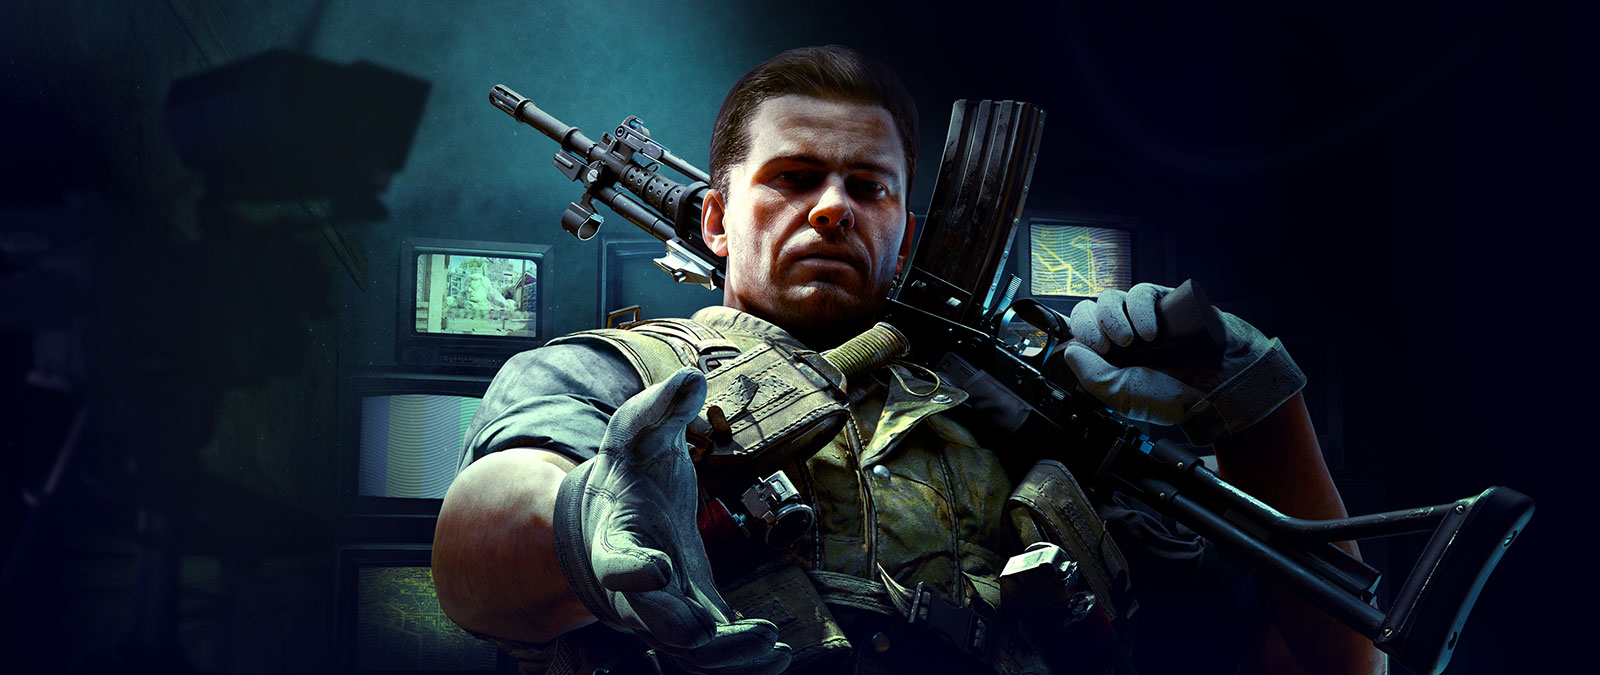 Character wearing tactical gear with a gun on his shoulder and his other hand out with a background of many monitors